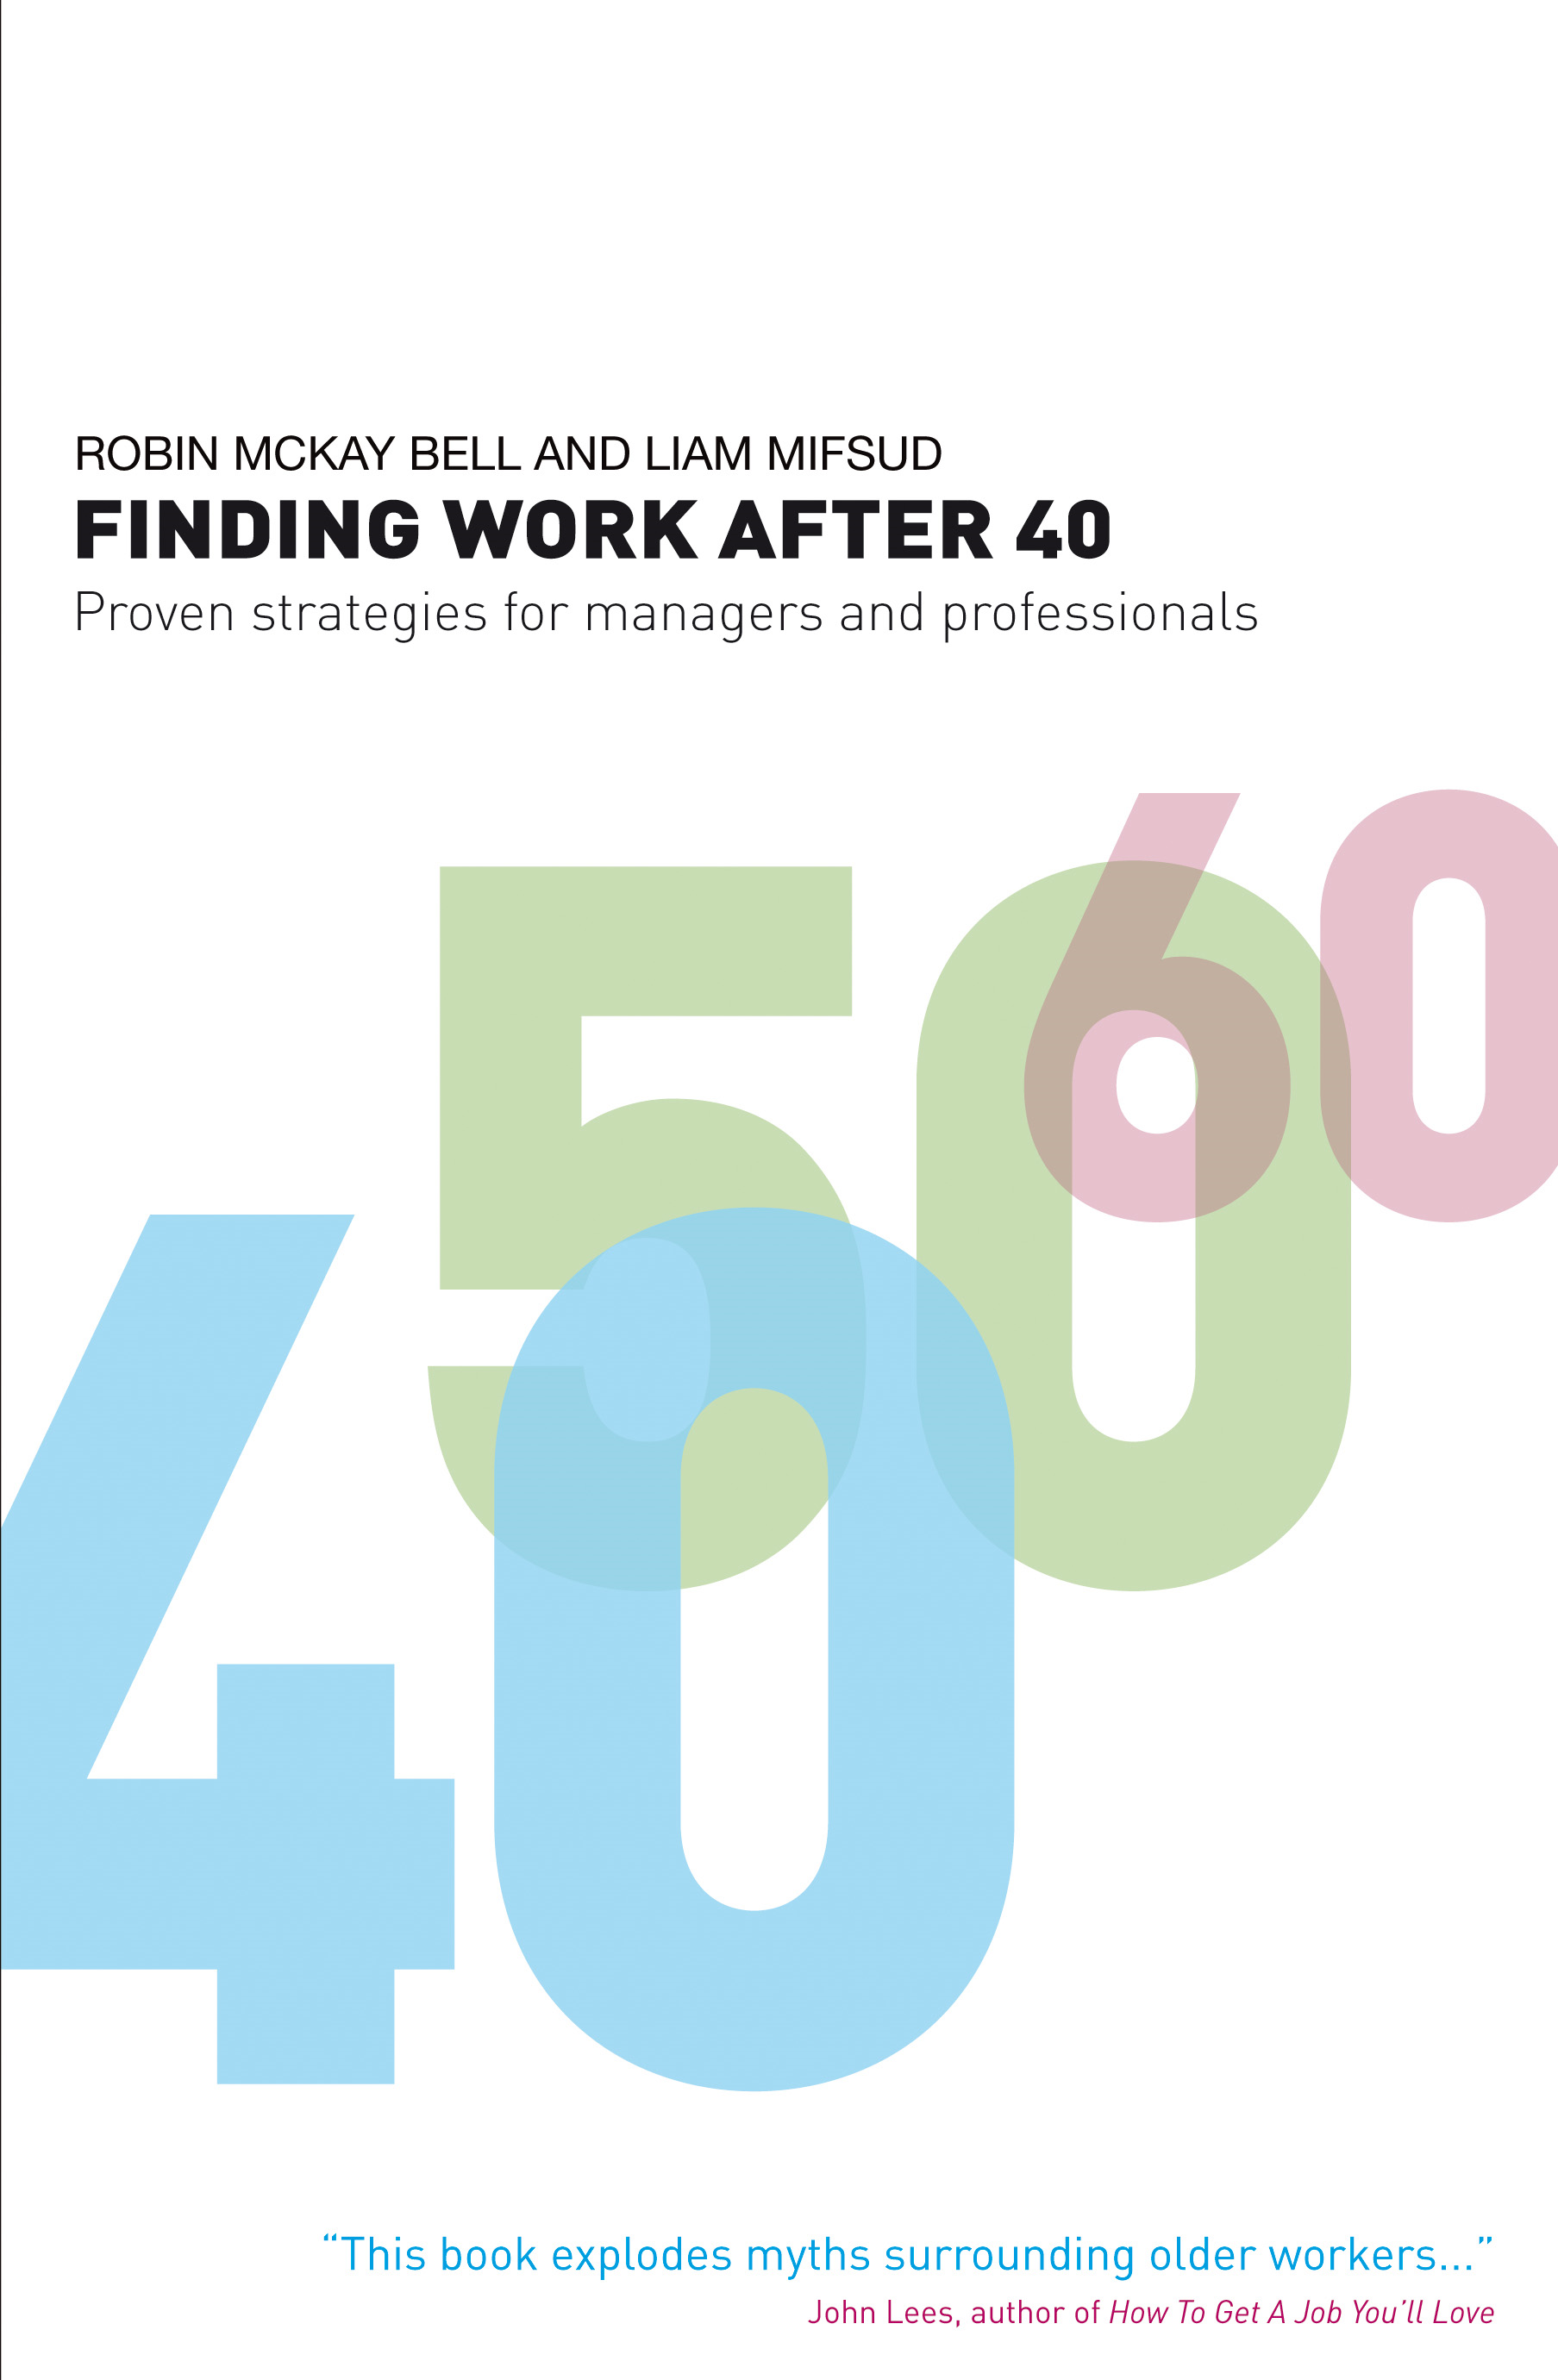 Finding Work After 40 Proven Strategies for Managers and Professionals